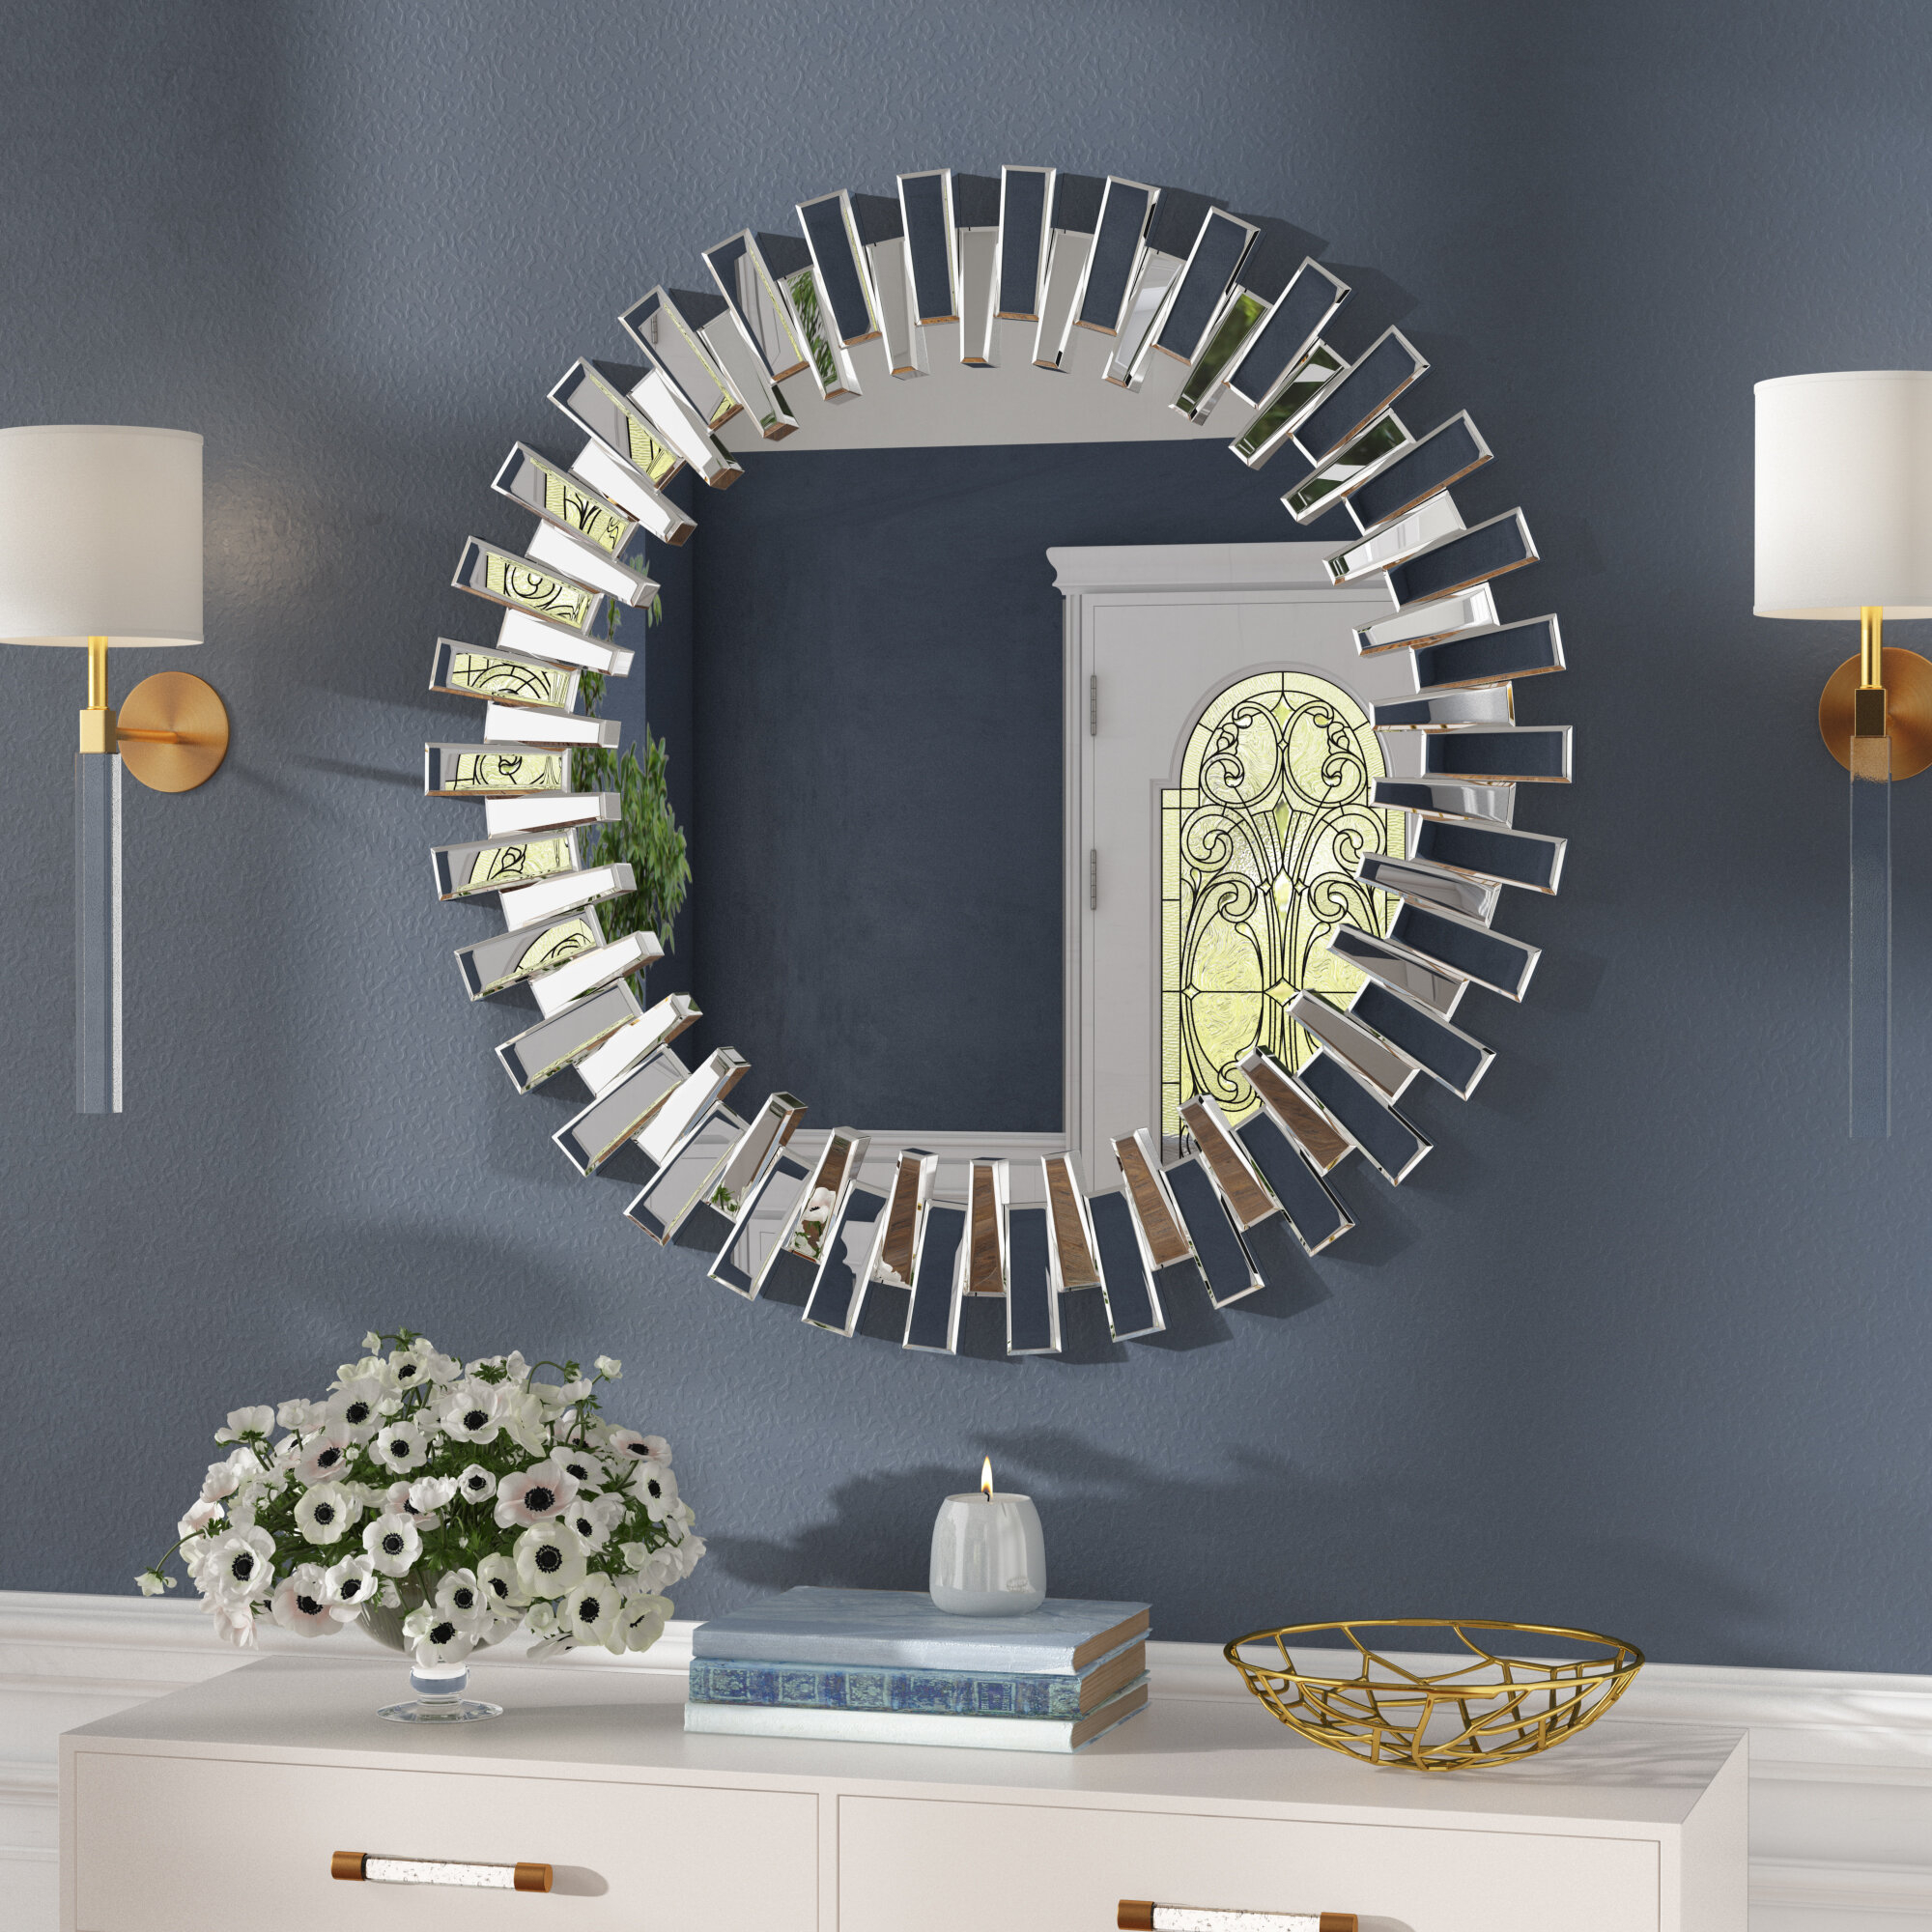 Beveled Sunburst Mirrors You'll Love In 2019 | Wayfair Inside Josephson Starburst Glam Beveled Accent Wall Mirrors (View 7 of 22)